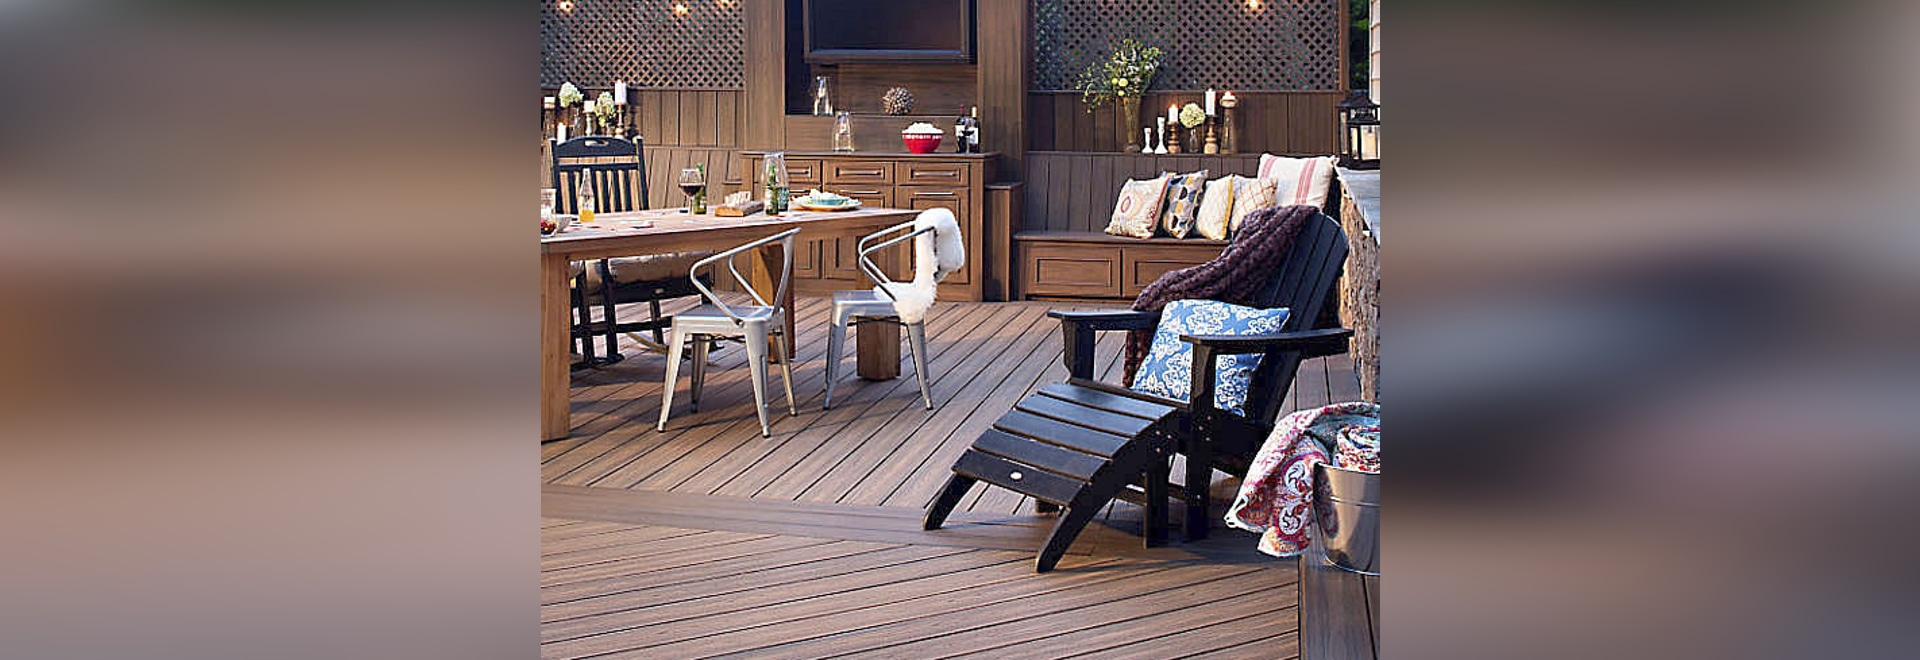 DECKING: TRANSCEND® IN HAVANA GOLD AND SPICED RUM